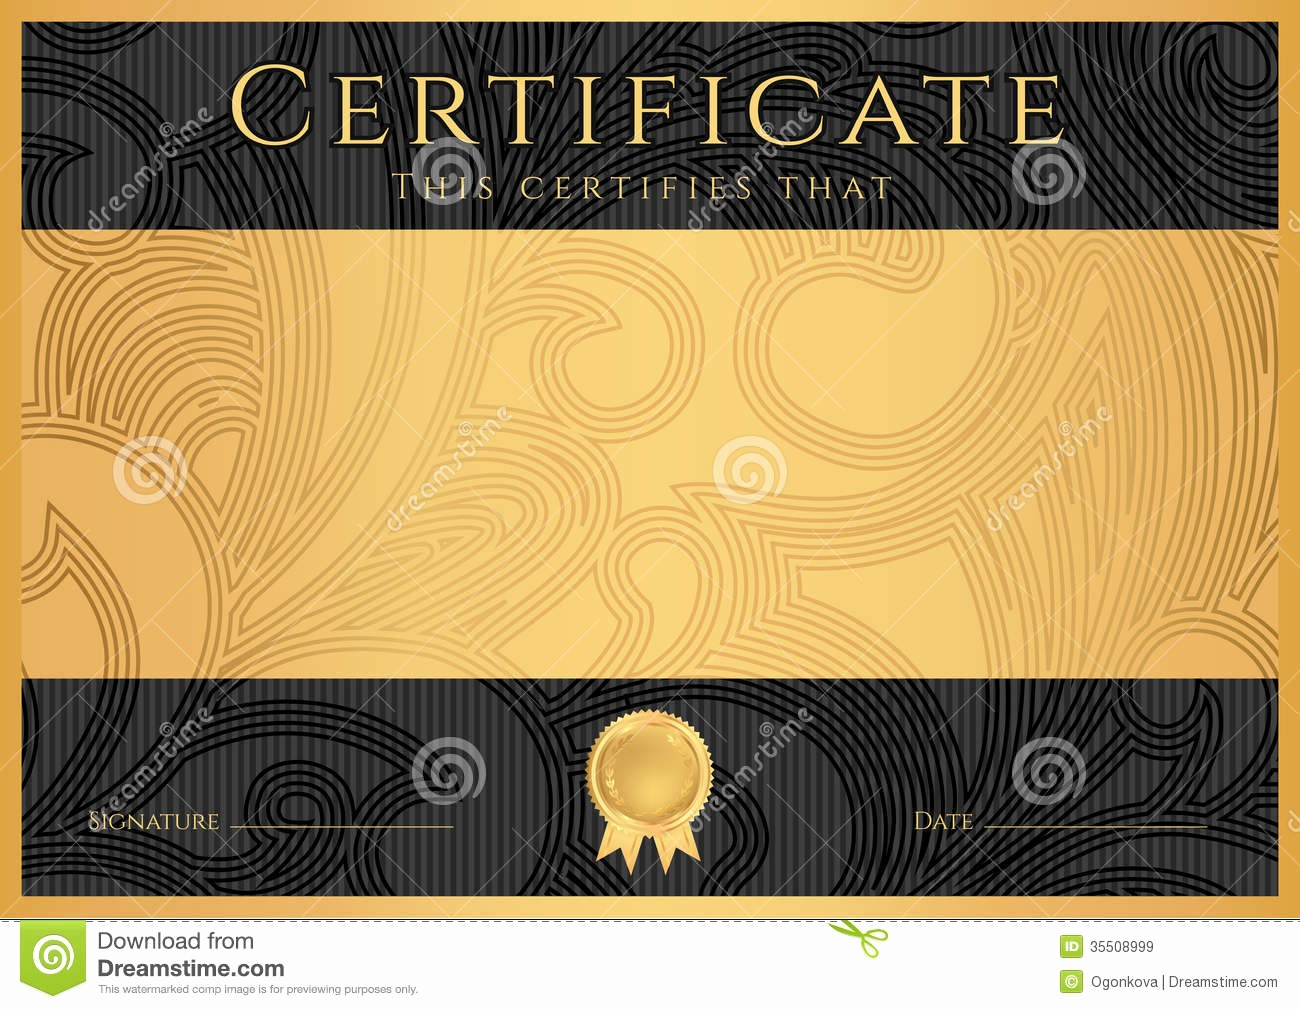 Certificate Background Design Free Download Fresh Diploma Ð¡ertificate Award Template Black Stock Vector